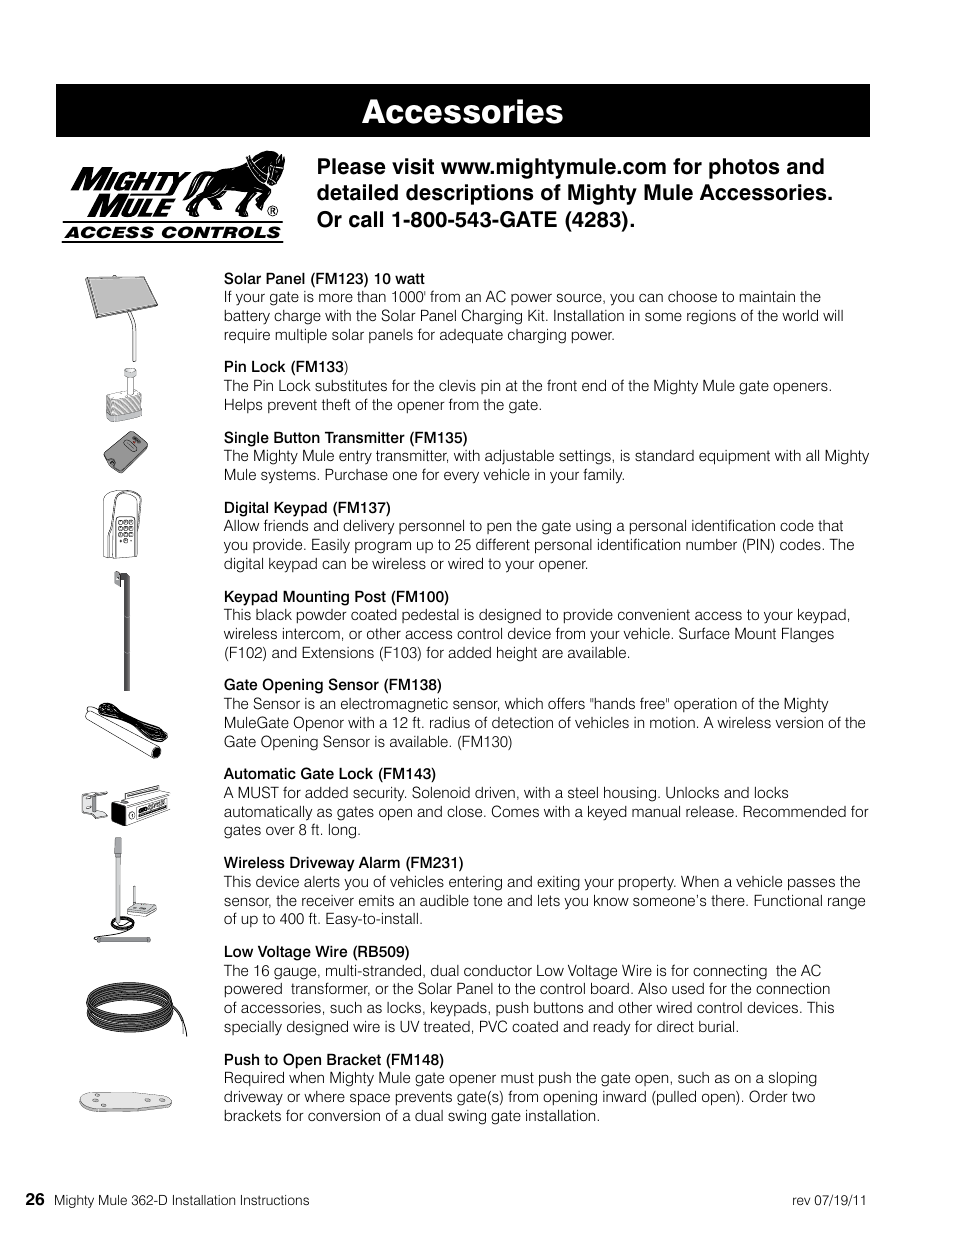 Accessories Mighty Mule Mm362 D User Manual Page 36 36